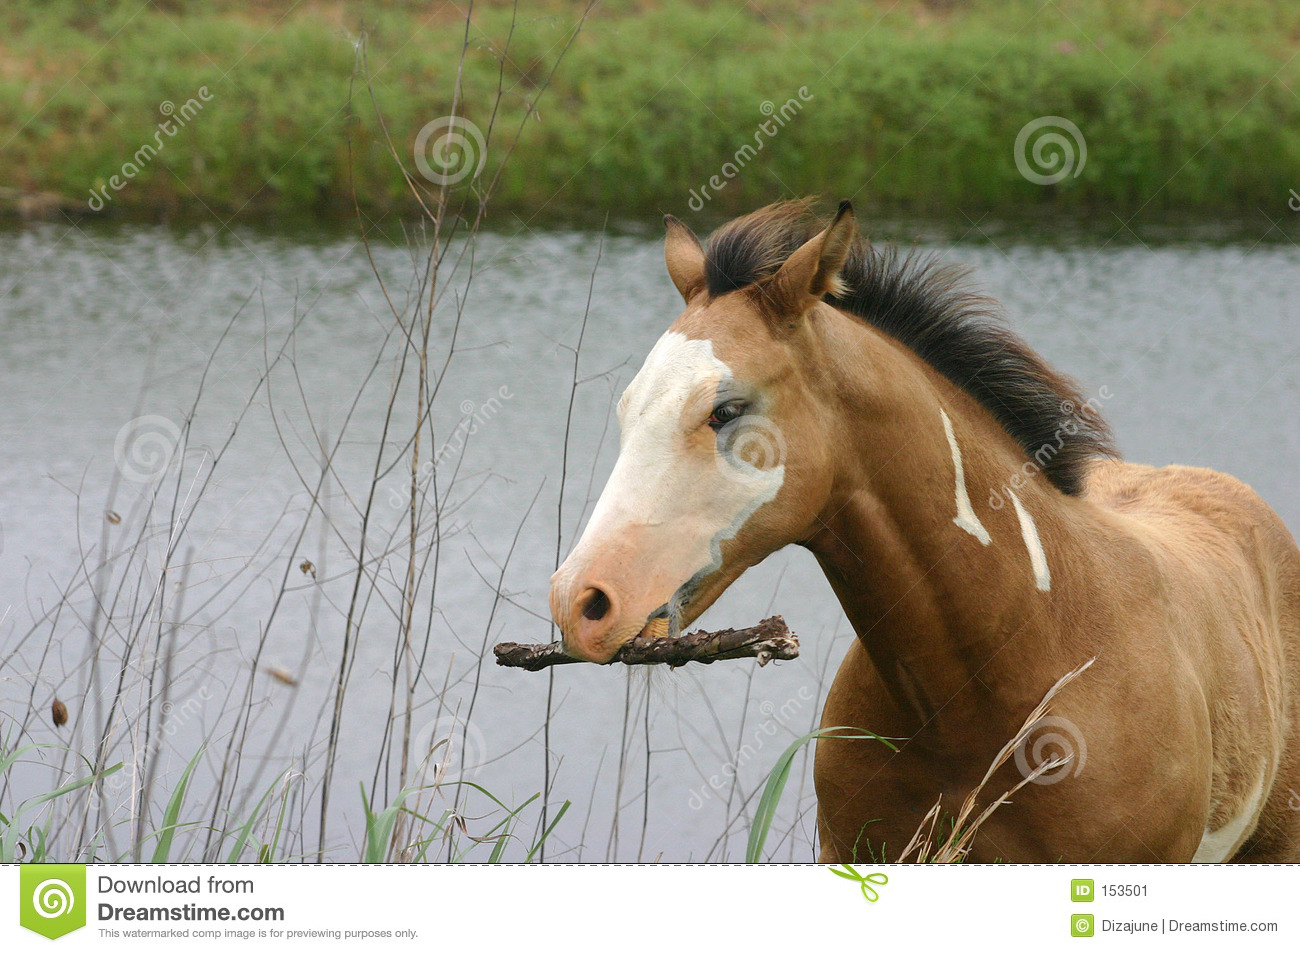 Horse Carrying Stick